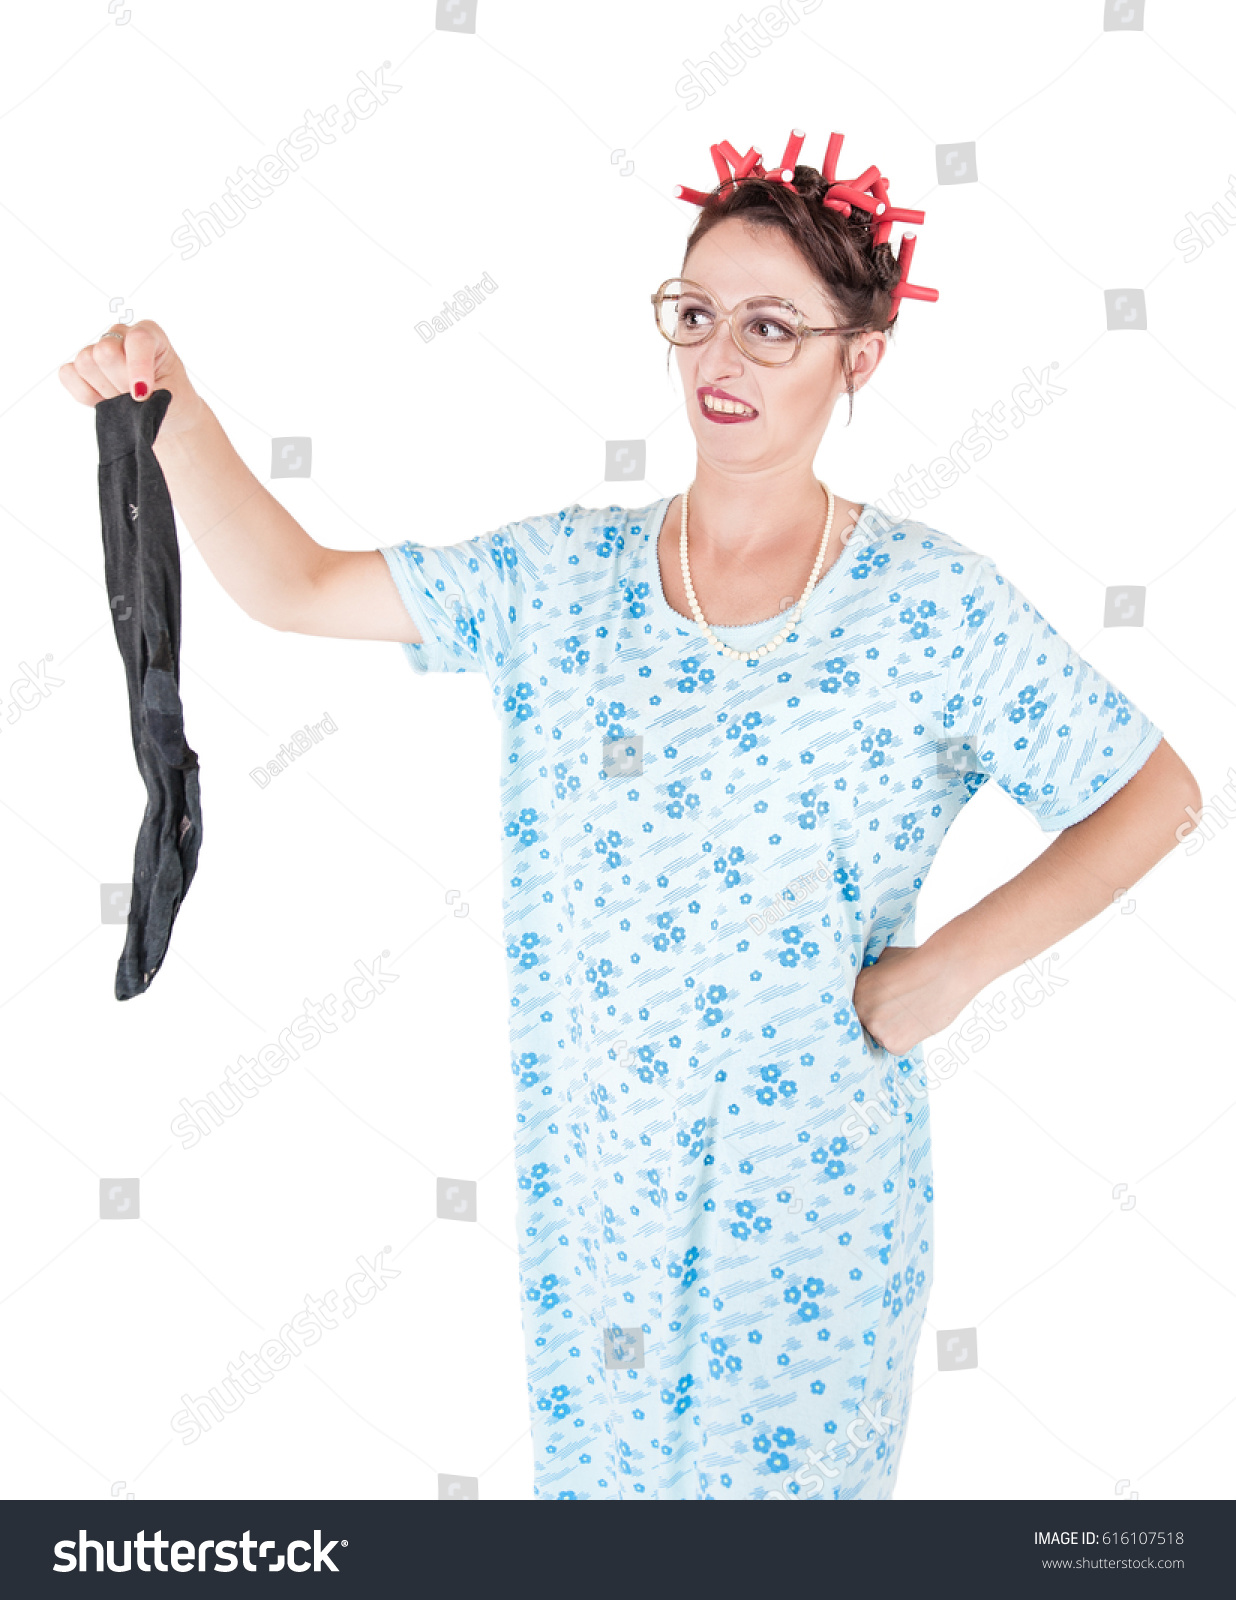 Funny Stereotypical Housewife Man Sock Bad Stock Photo (Royalty Free ...